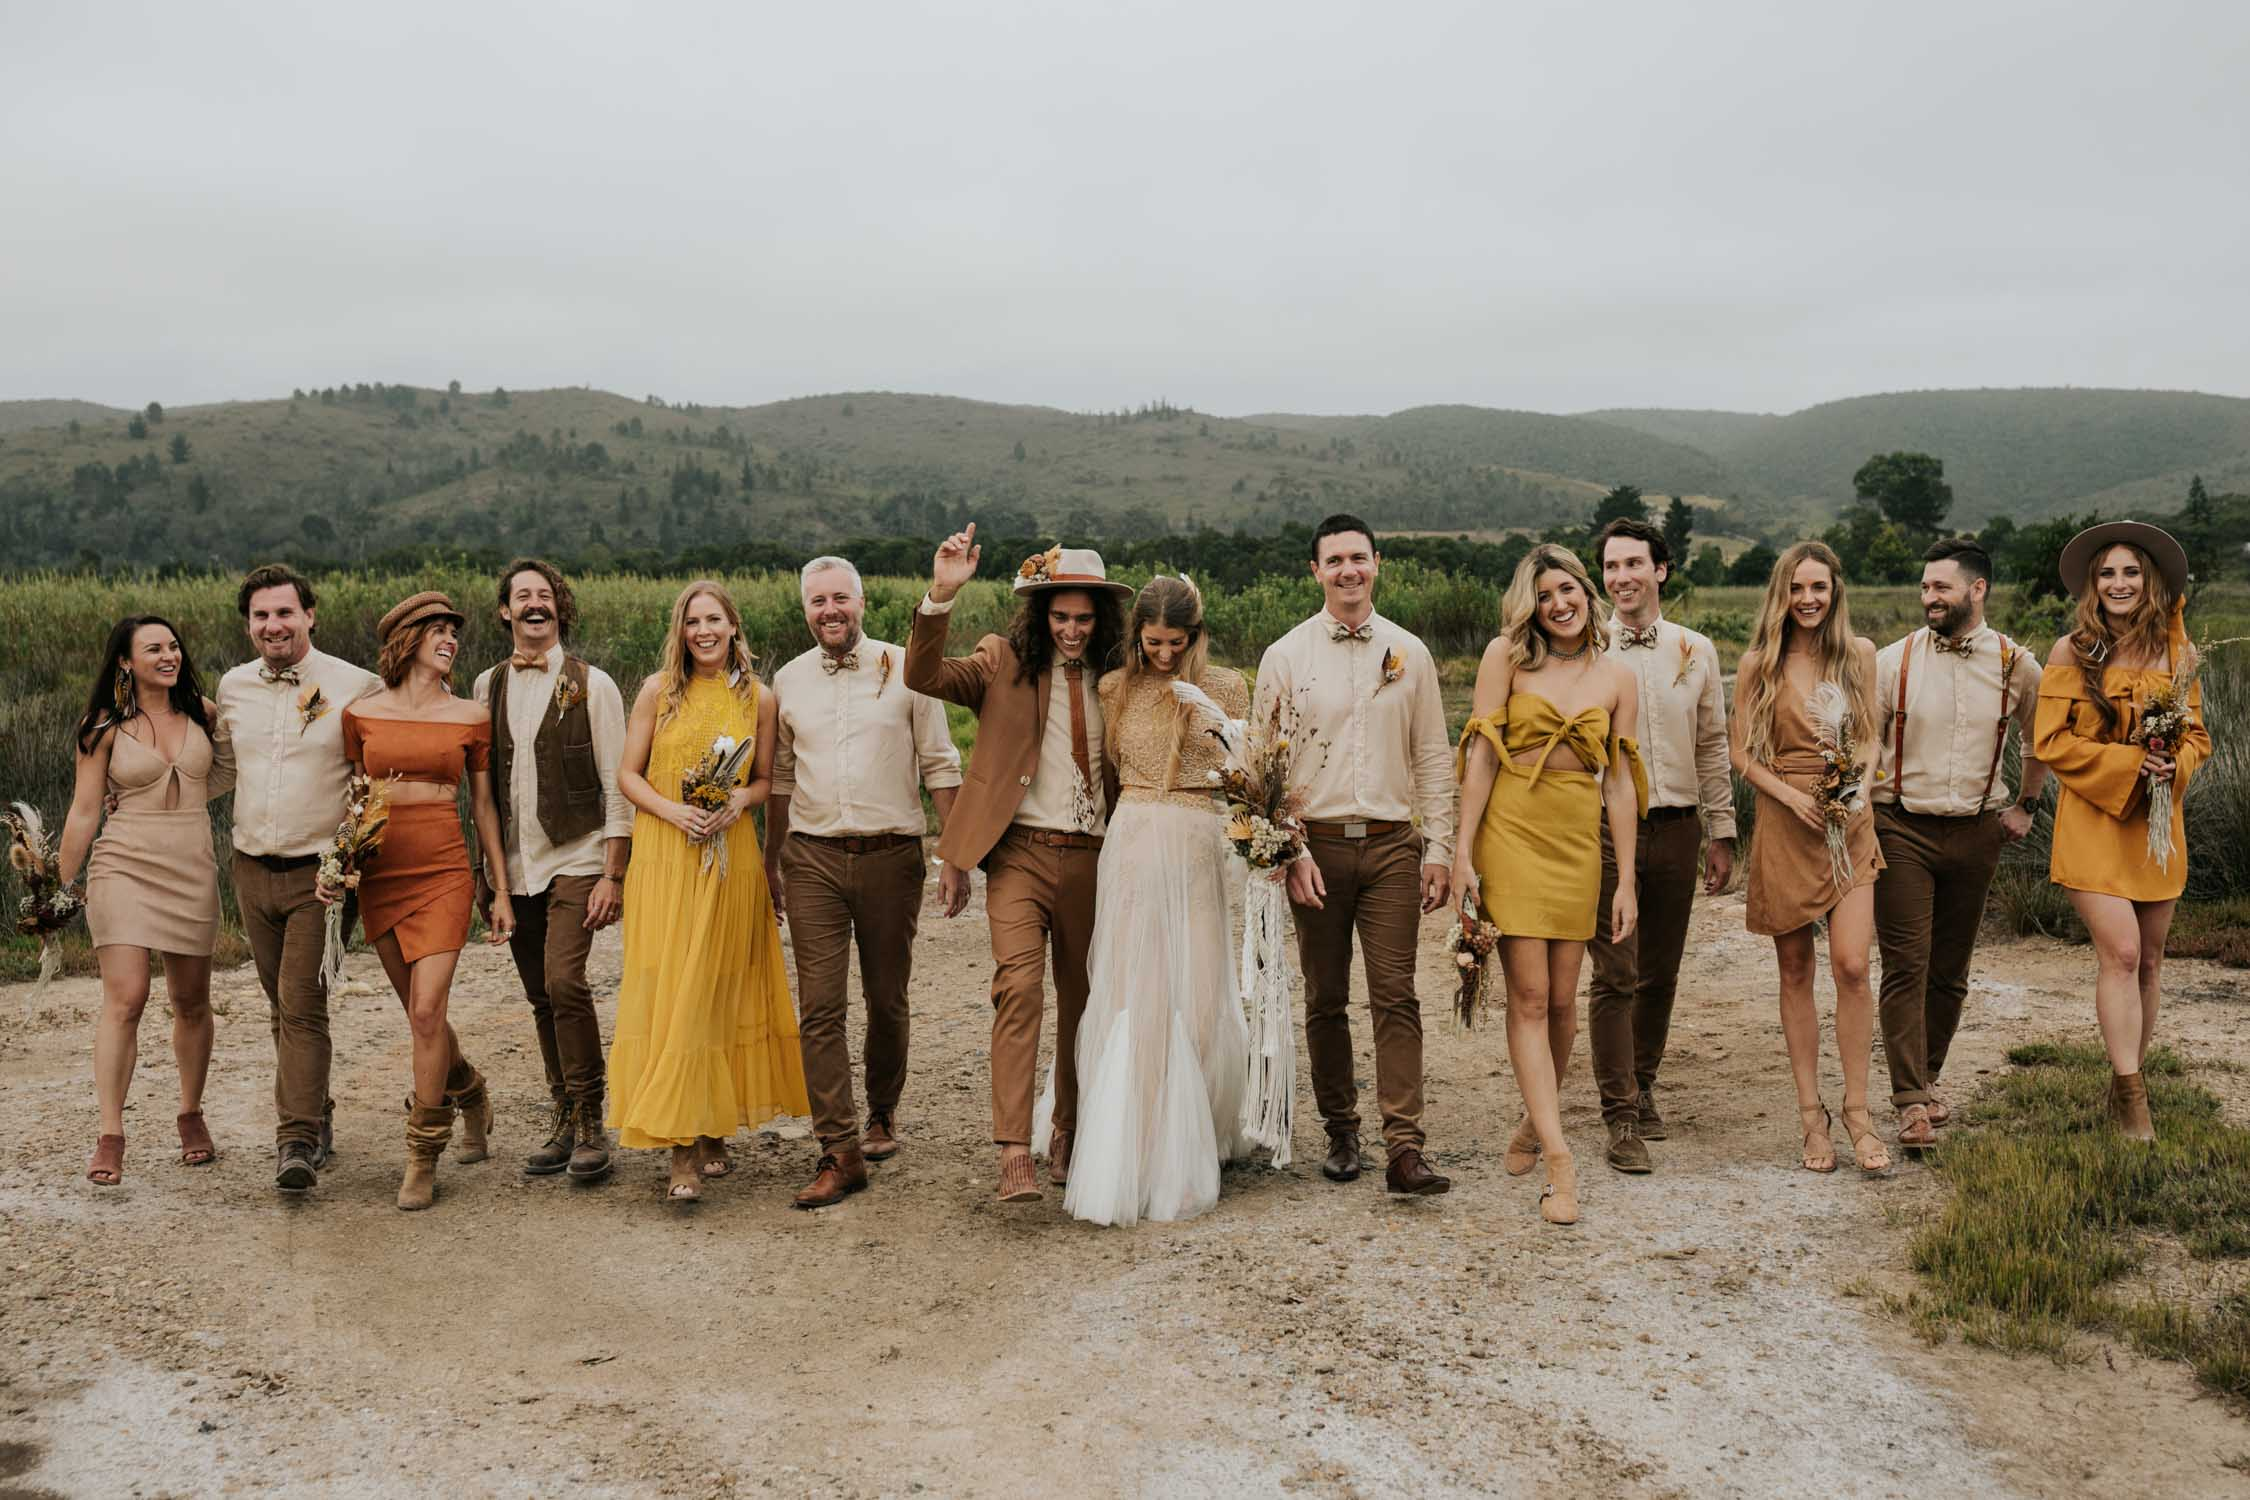 The ultimate boho gypsy bridal party wearing gypsy sunshine and rust coloured dresses, hats and brown suits in at destination wedding in Plett South Africa